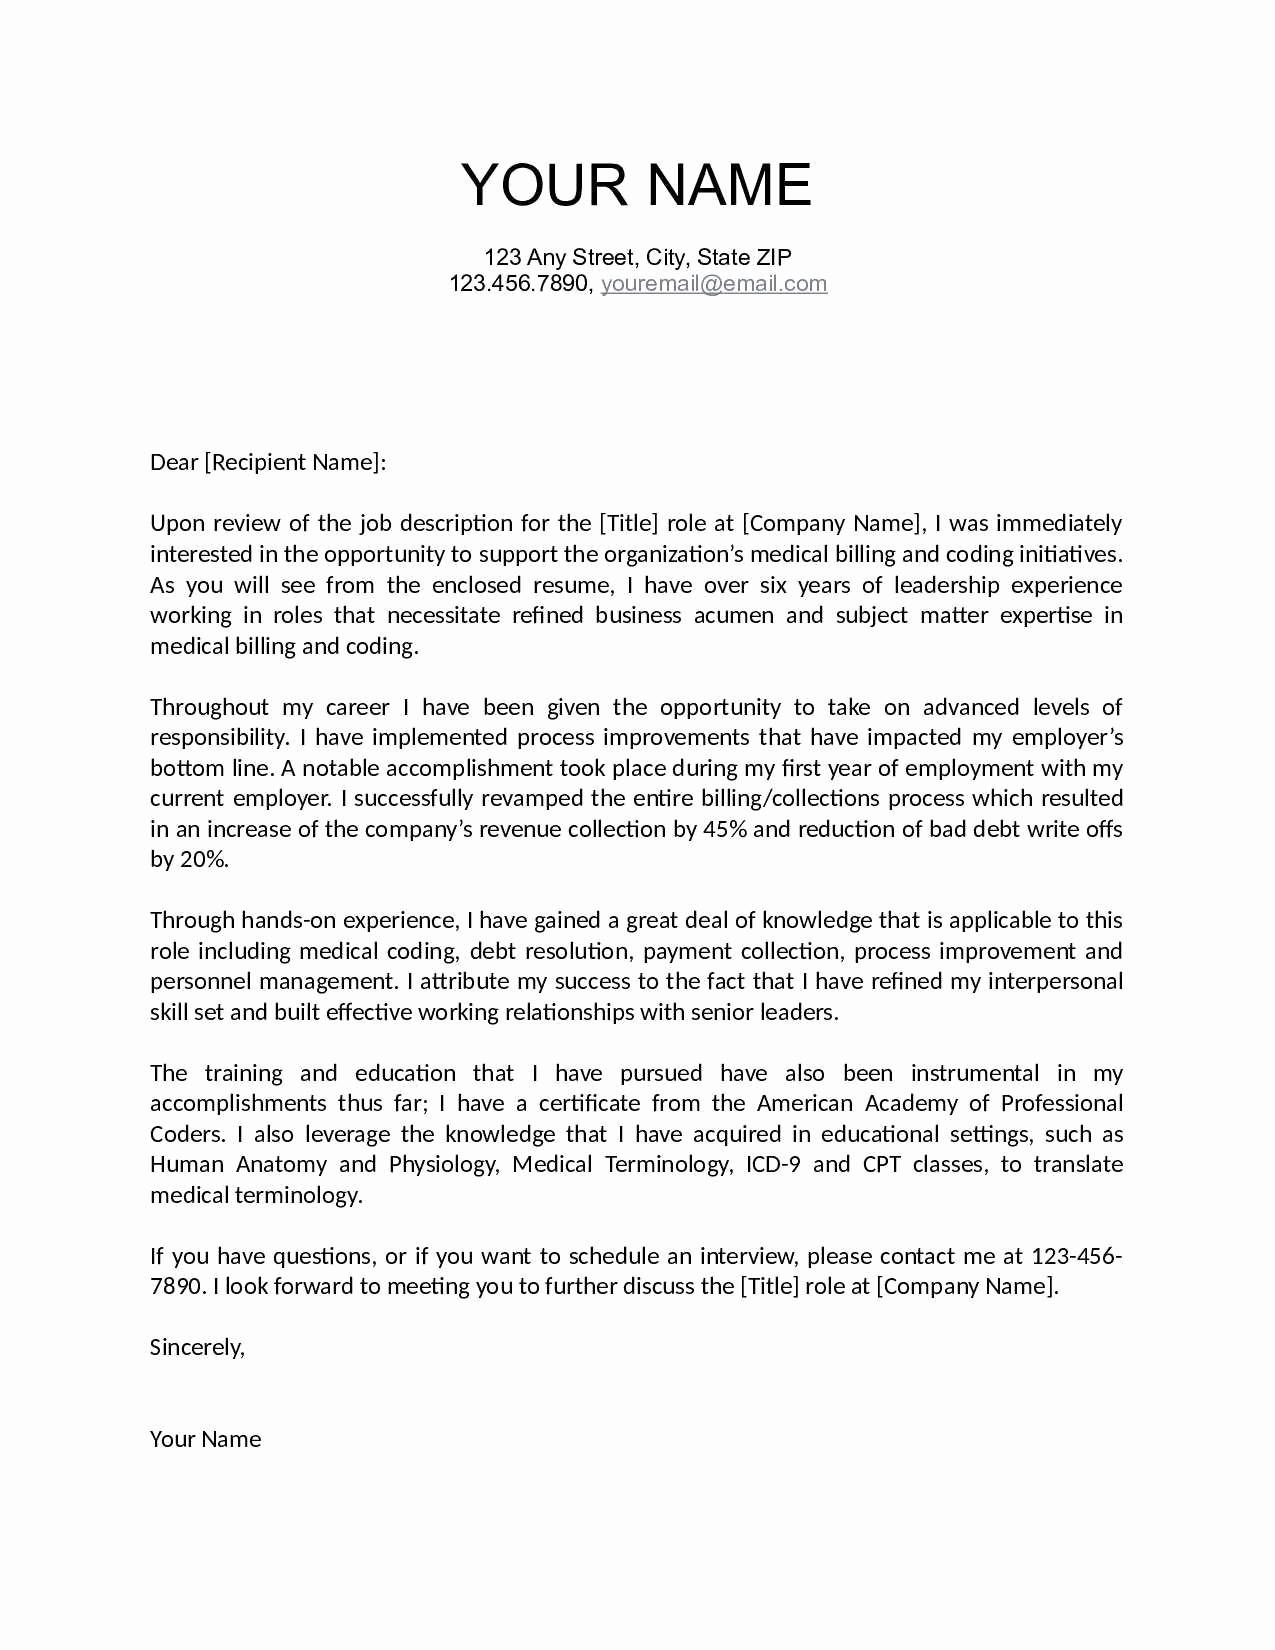 Proper Cover Letter Template Collection